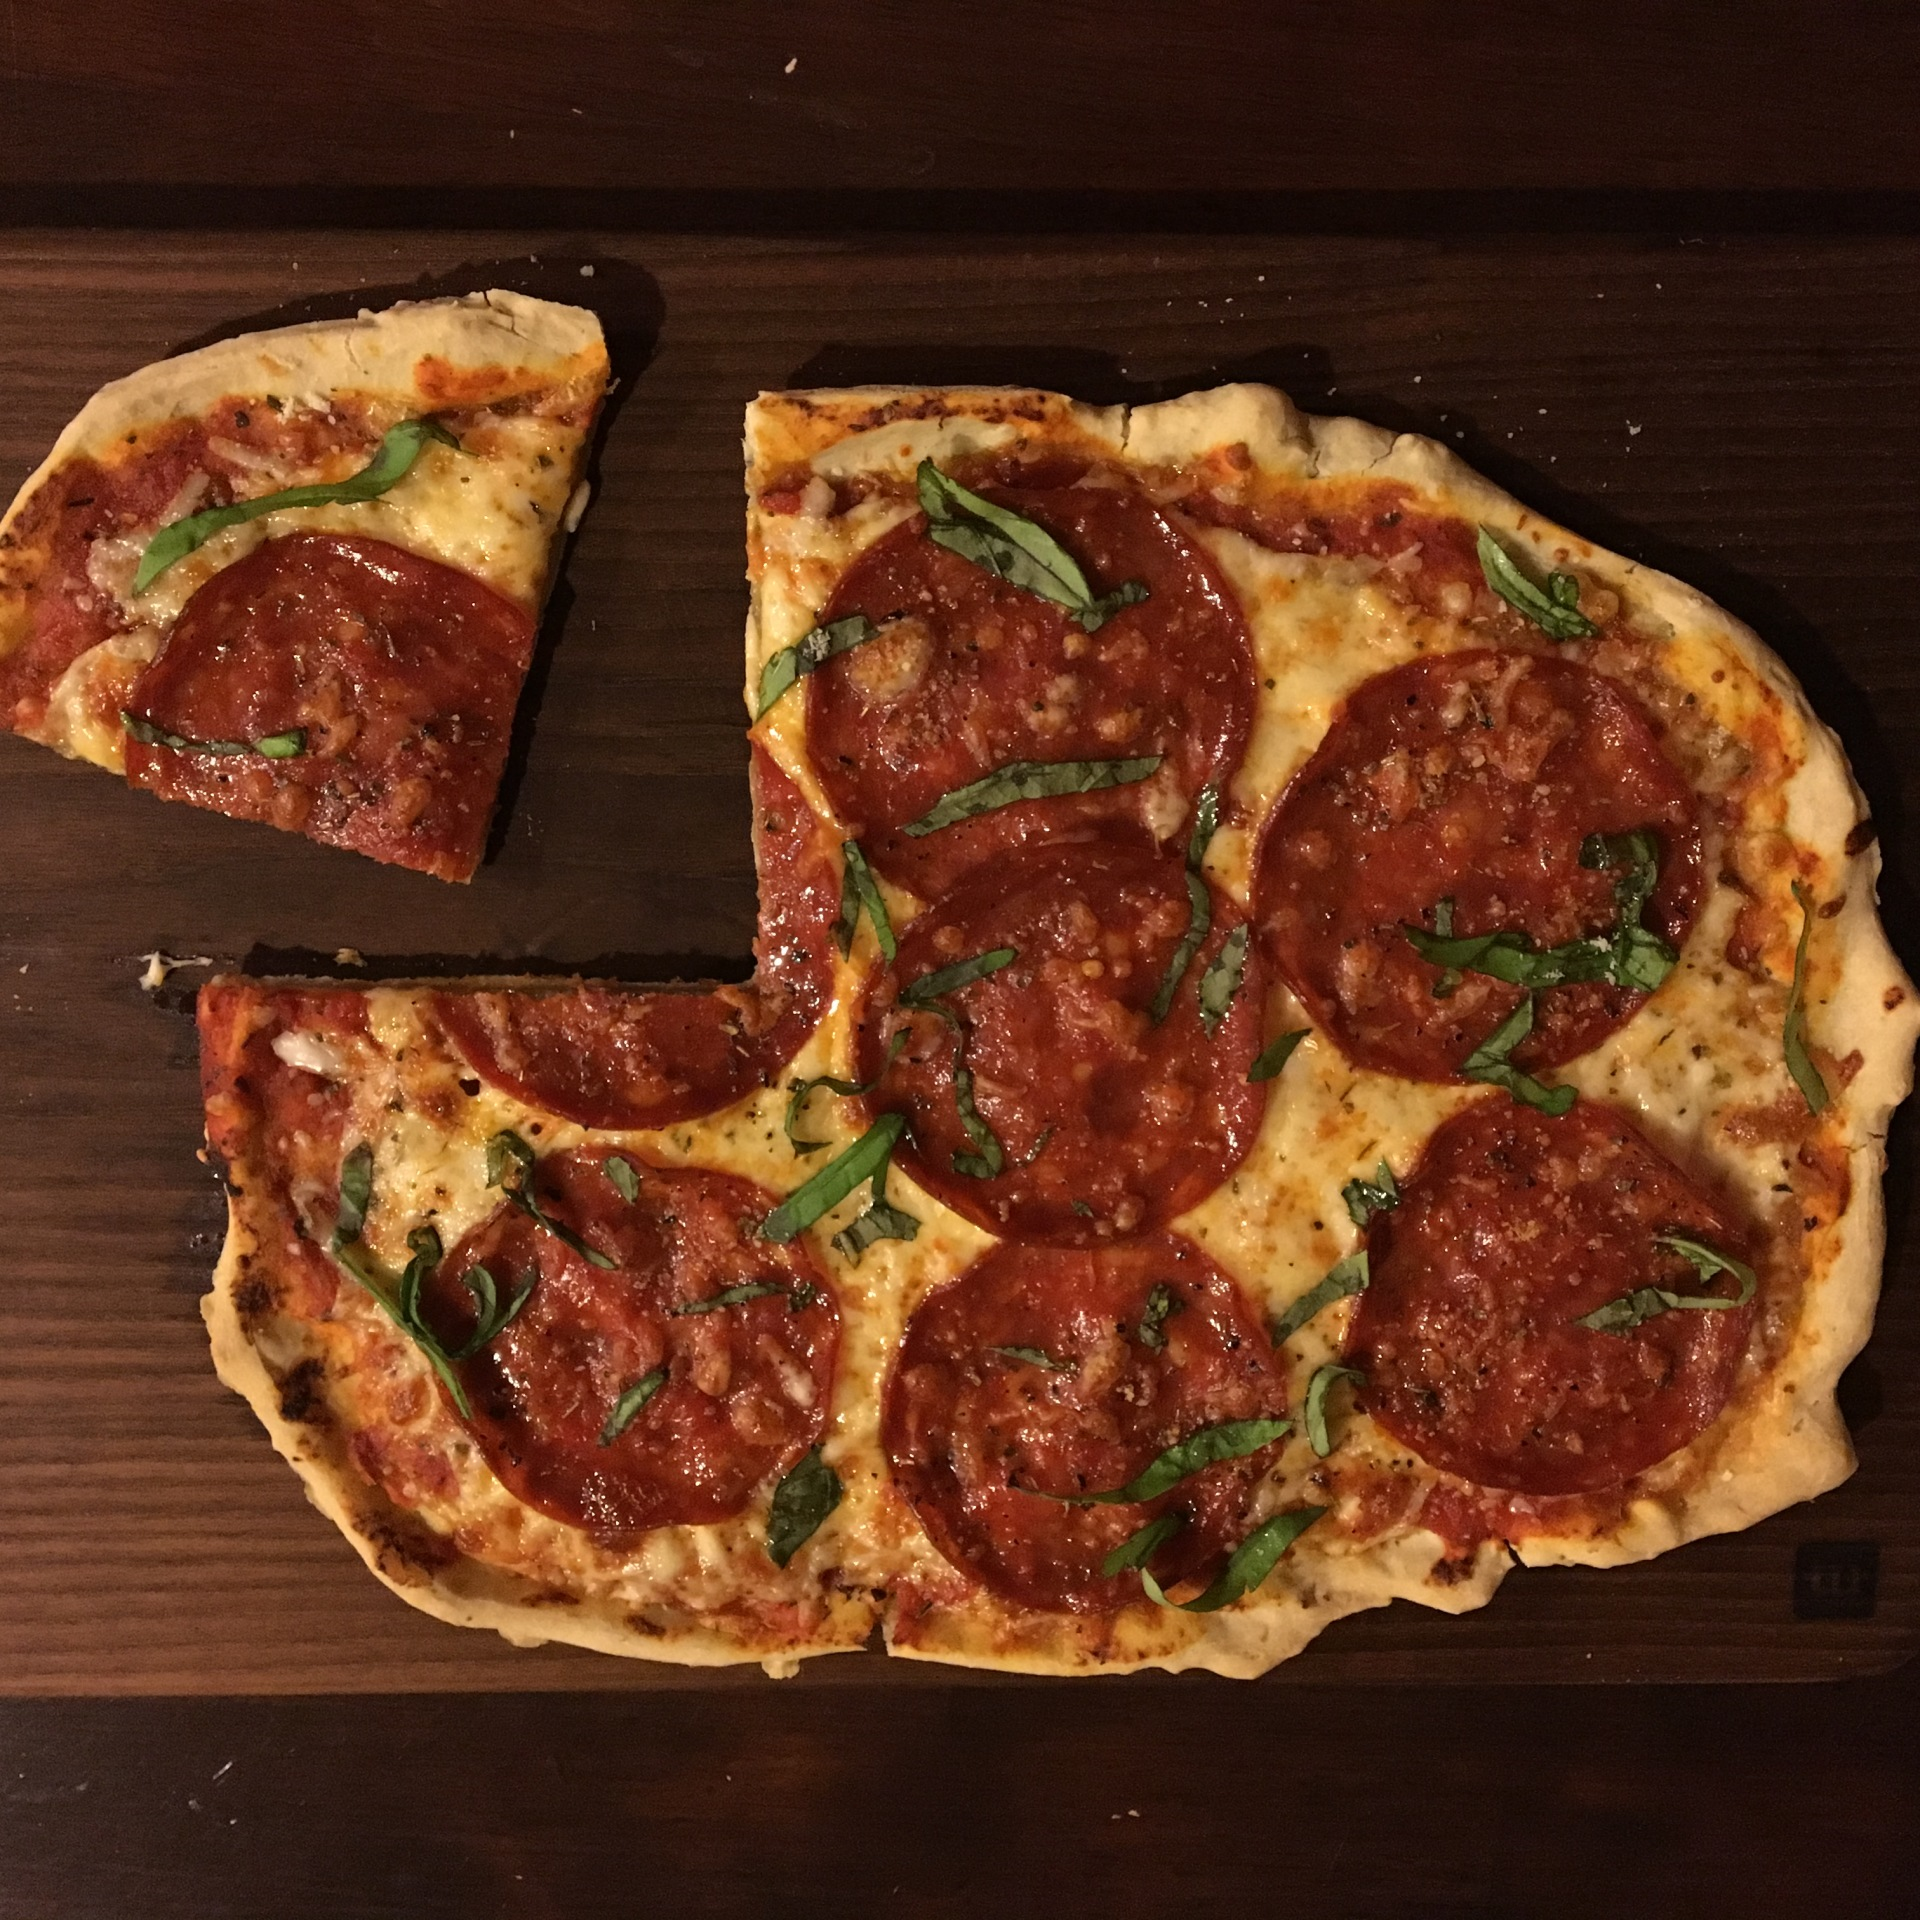 Chebe Review - Yummy Gluten Free Breads, Pizza, and More!